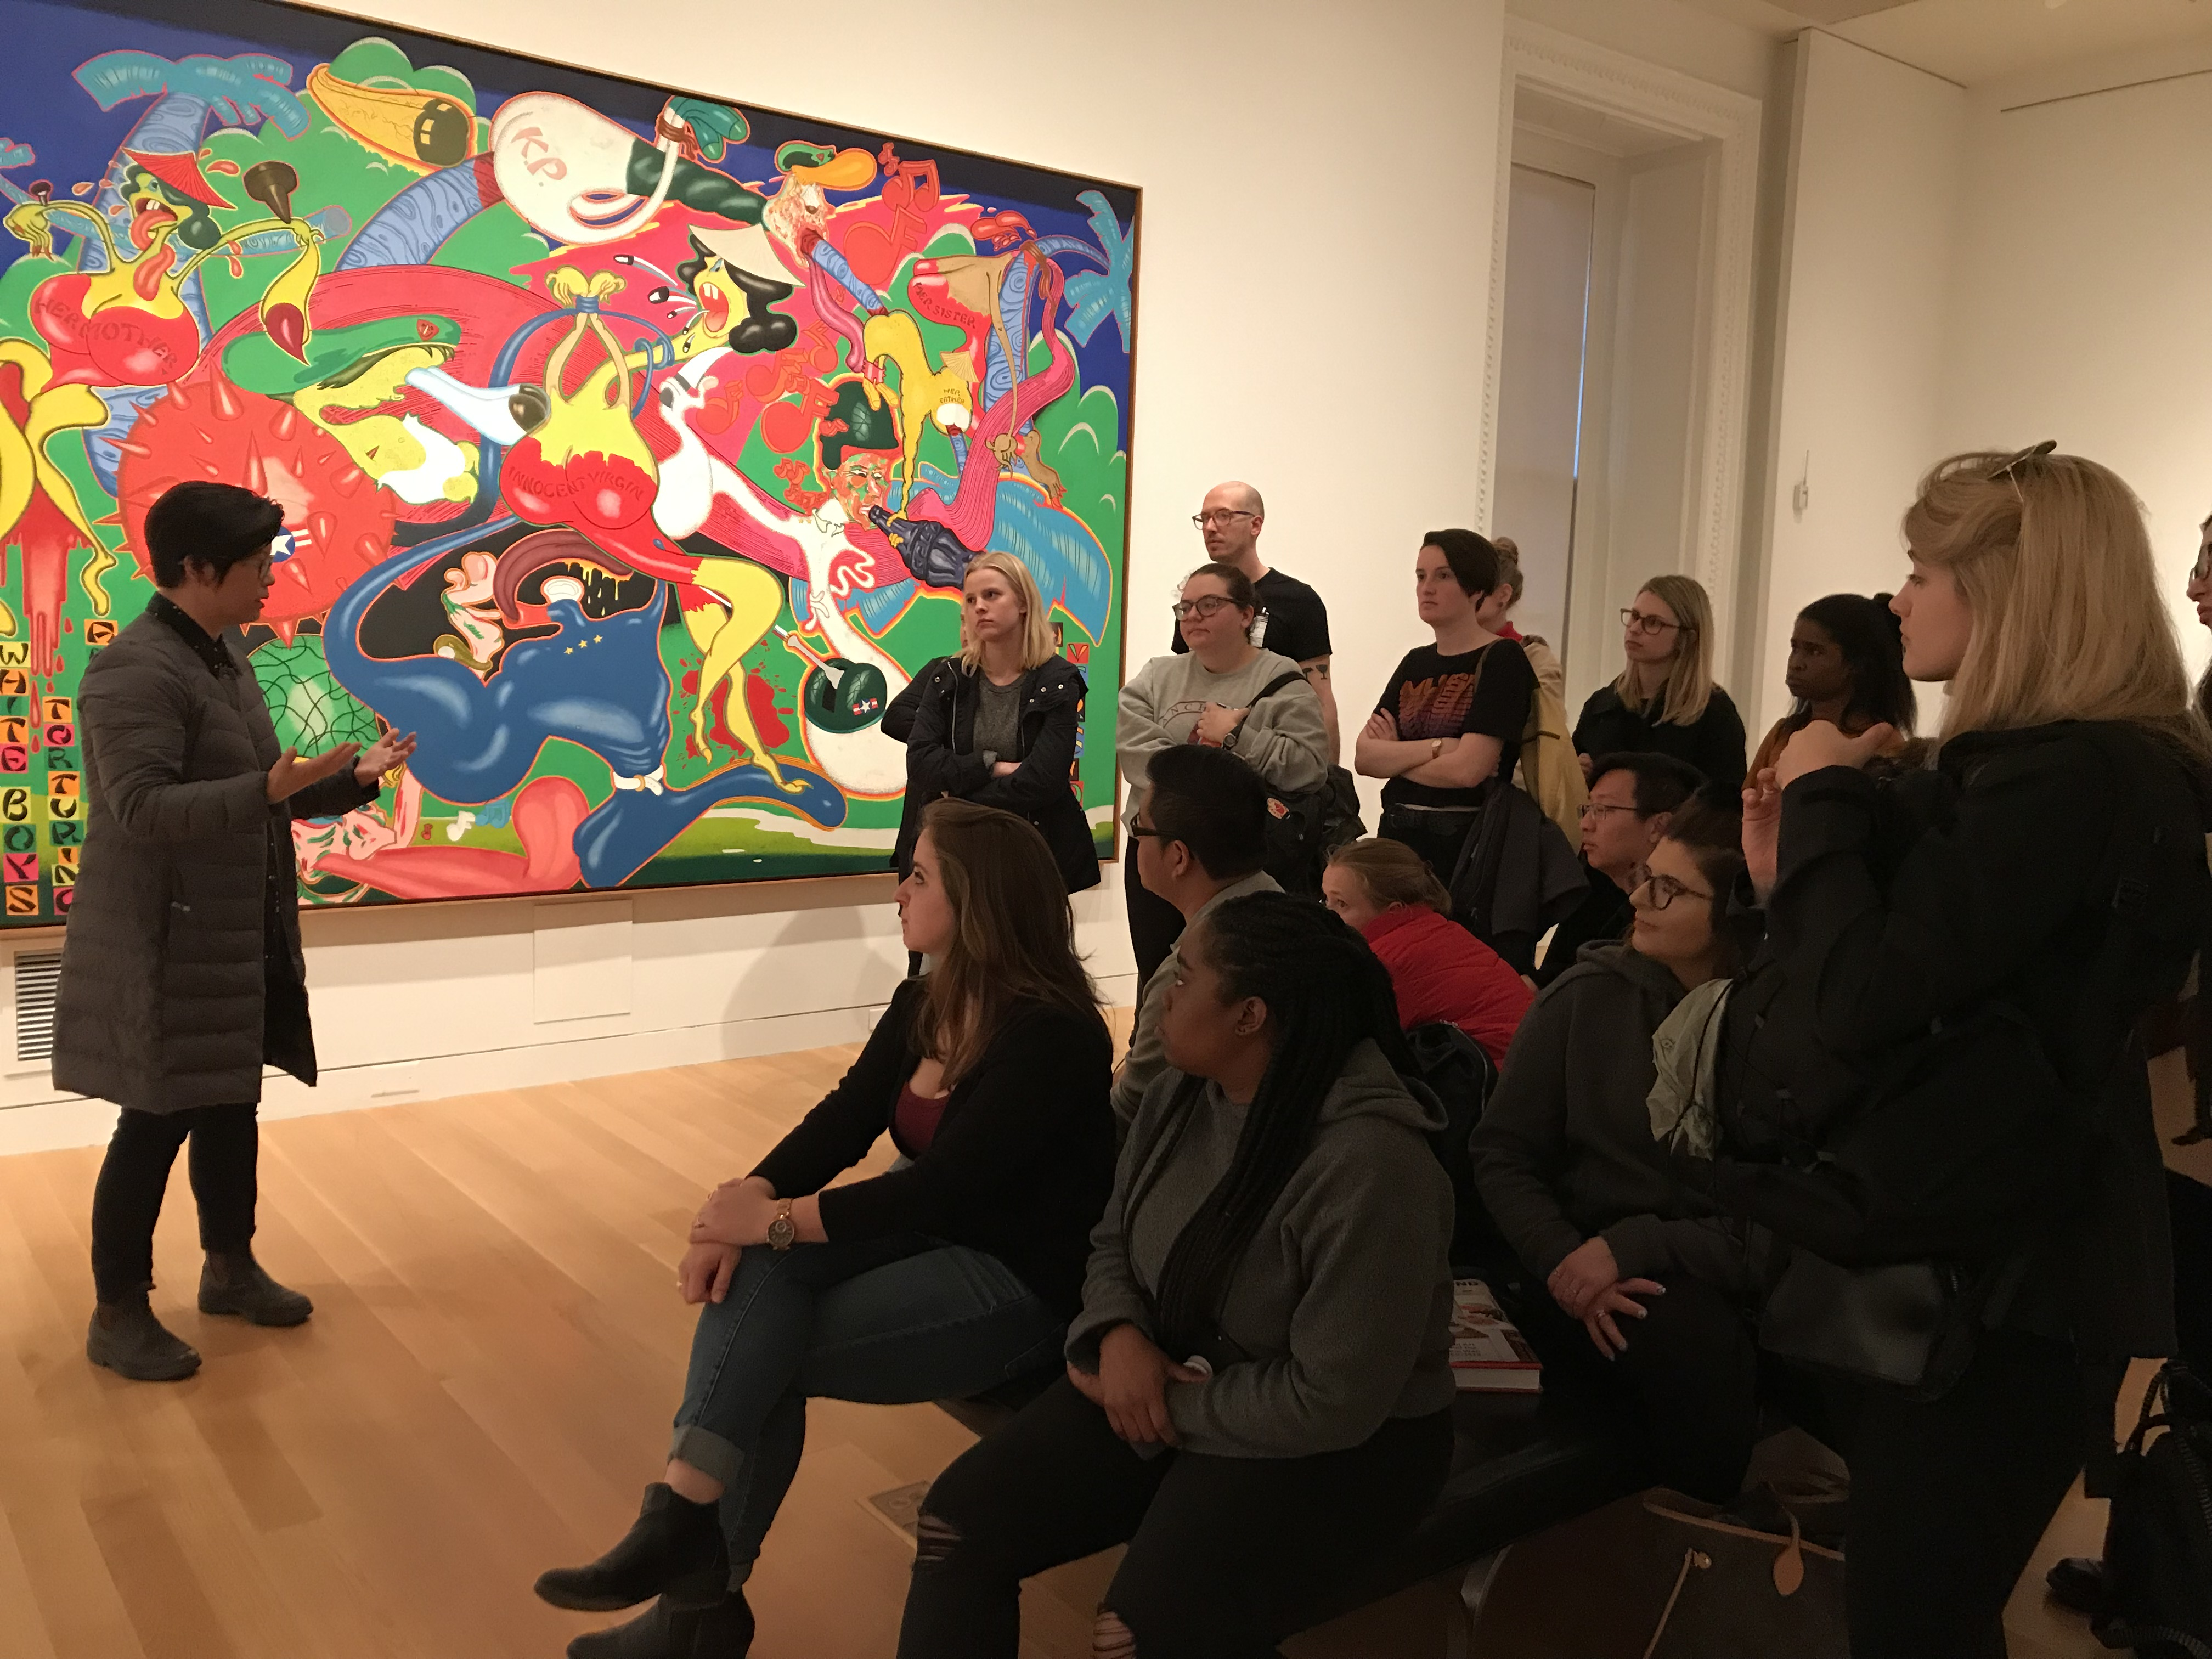 Students listening to a talk at the Smithsonian American Art Museum